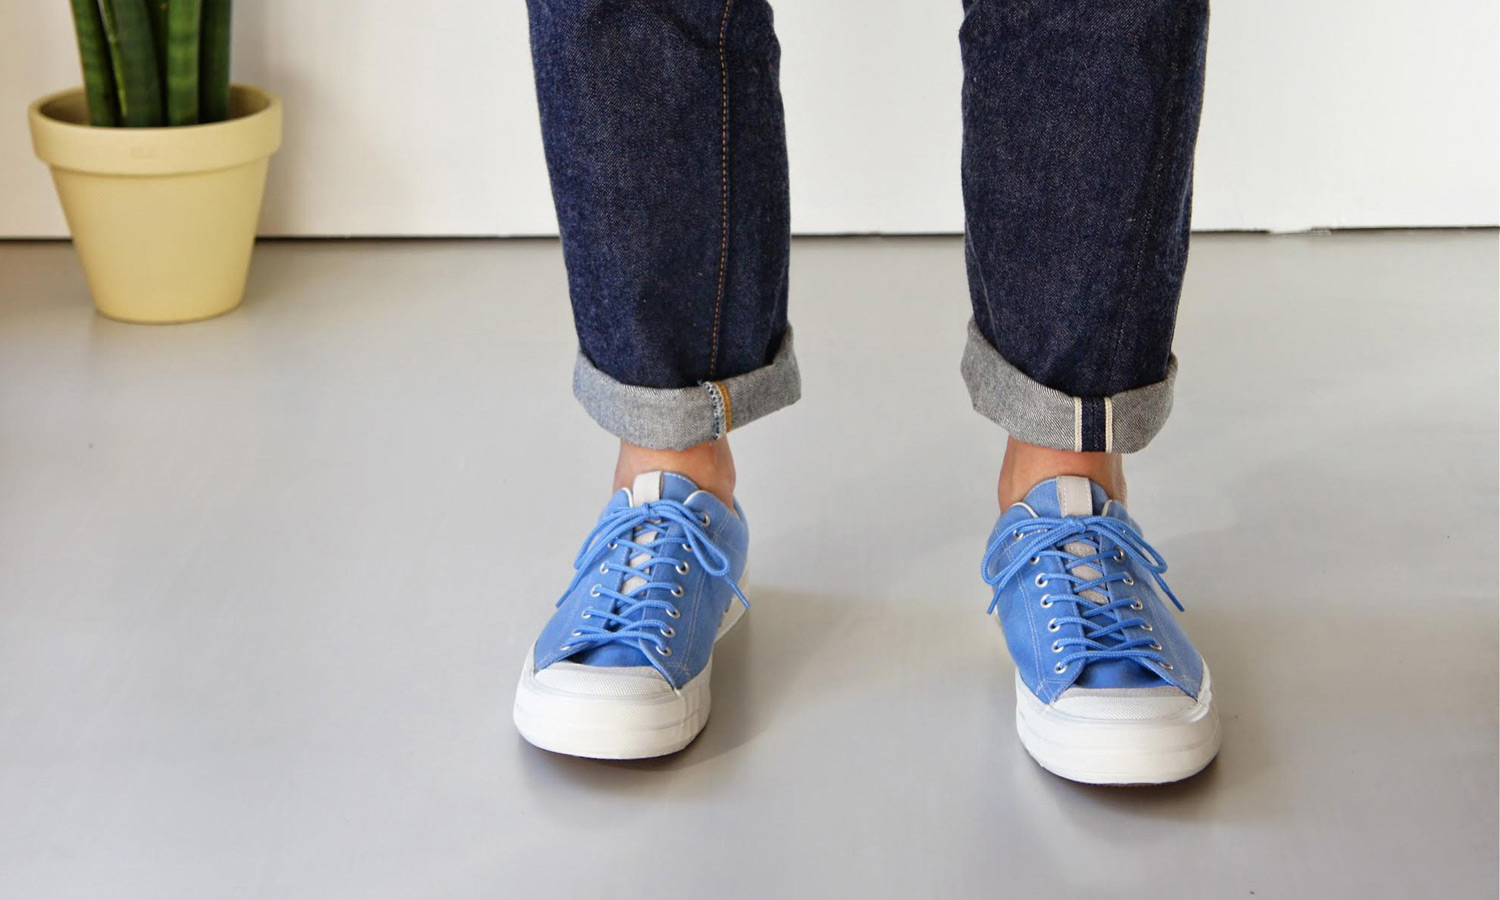 rfw spring/summer 2015 denim sneakers | selectism